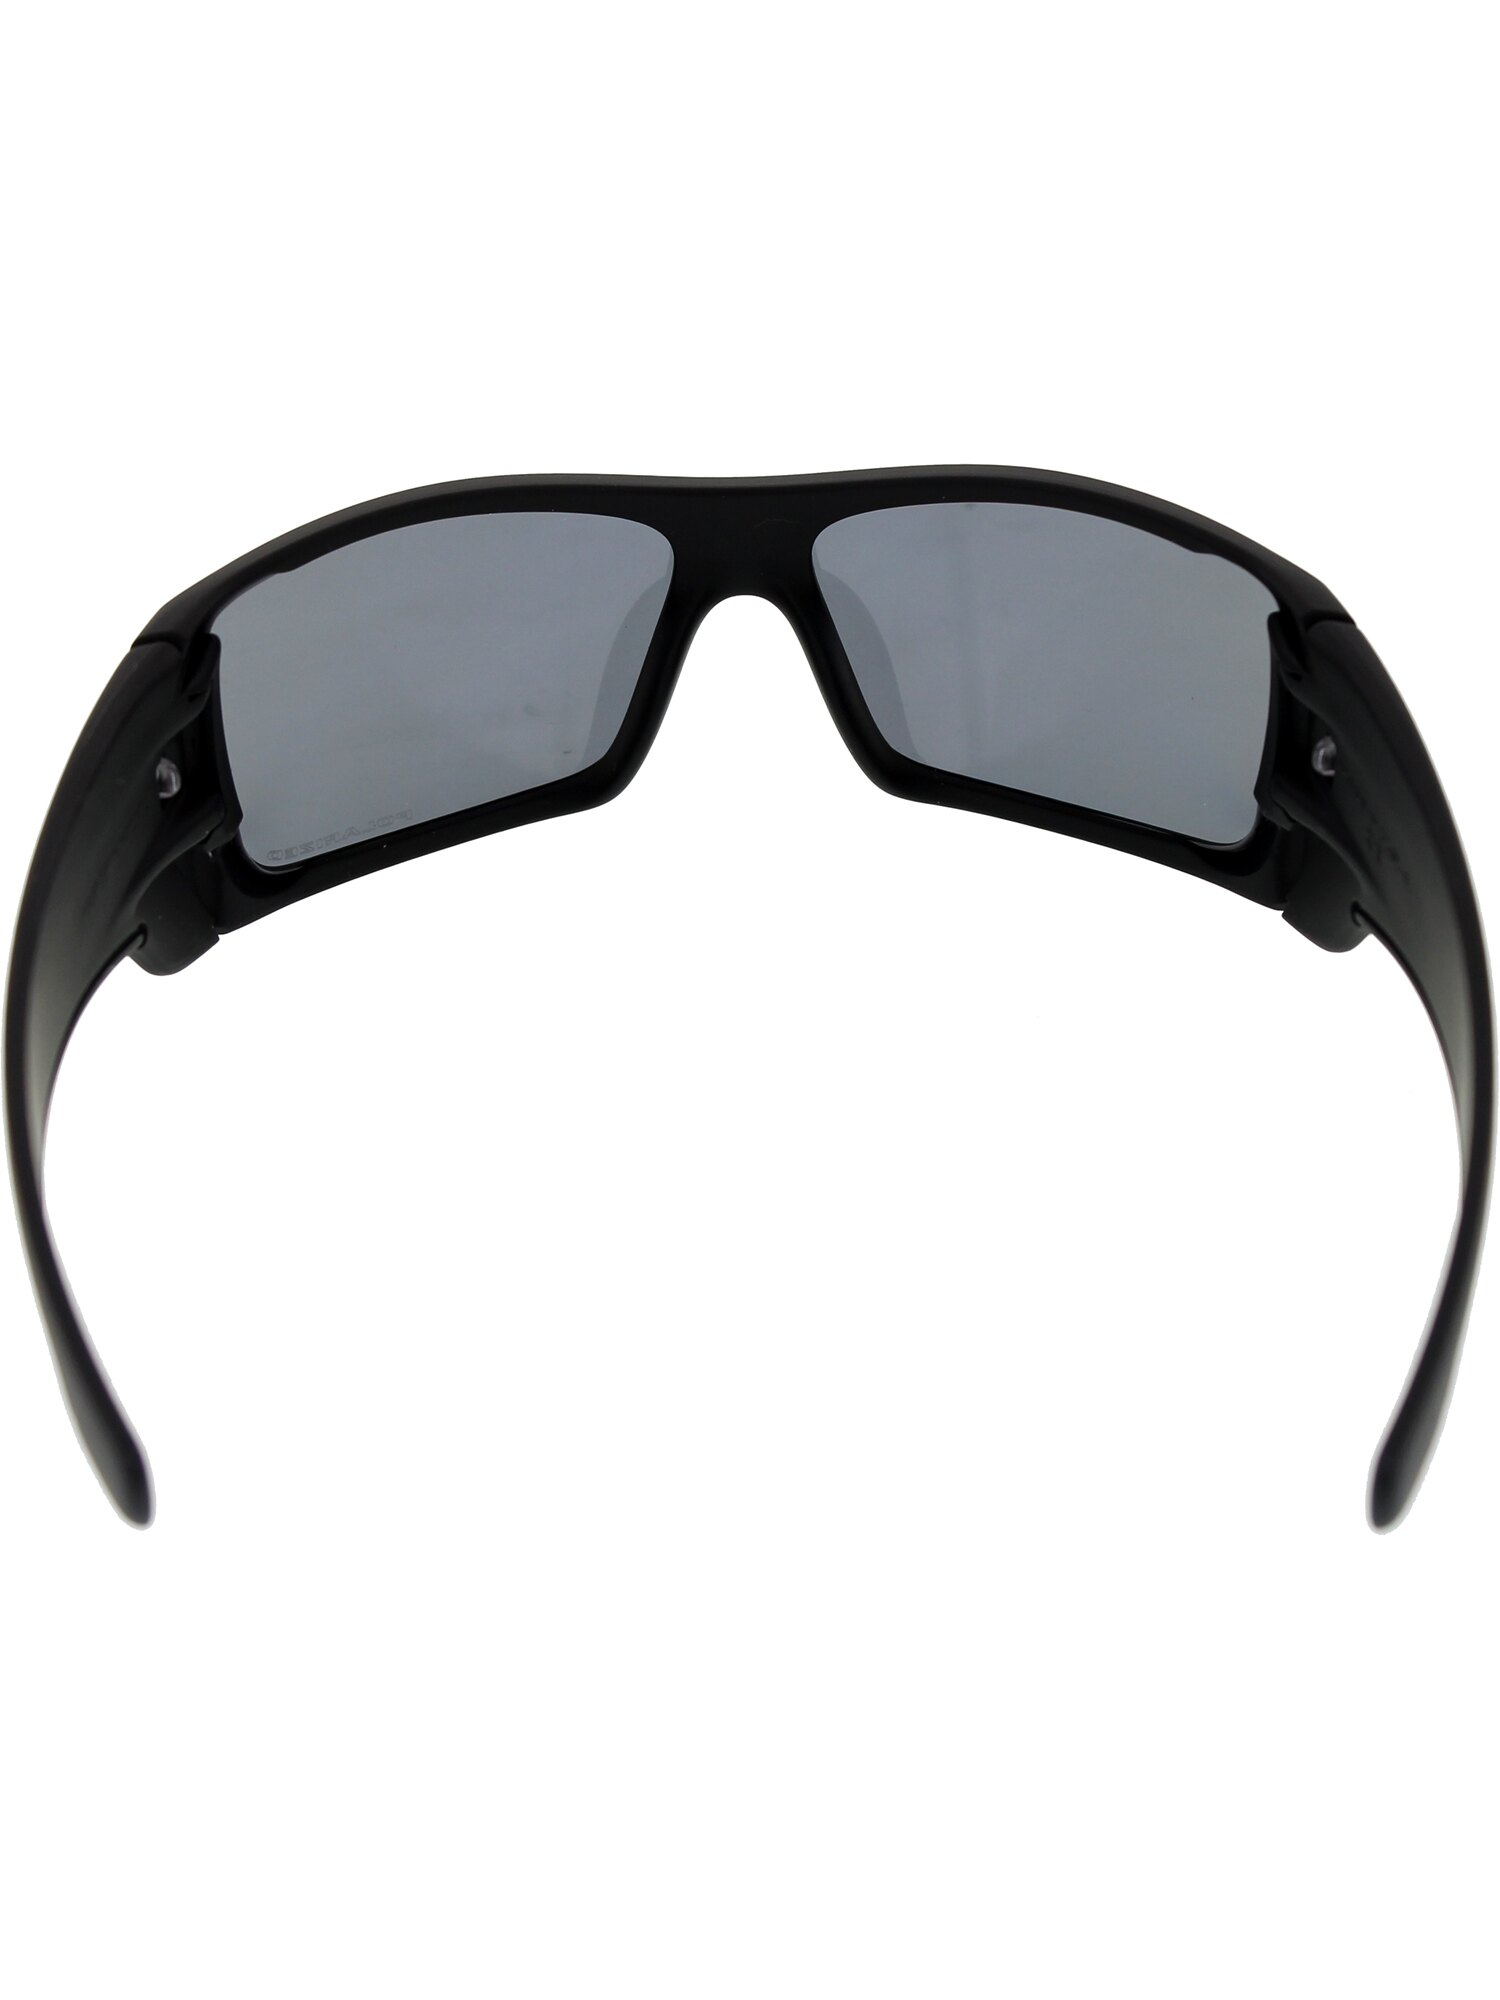 6bb1a04e7a2 AreaTrend  Oakley Men s Polarized Batwolf Sunglasses